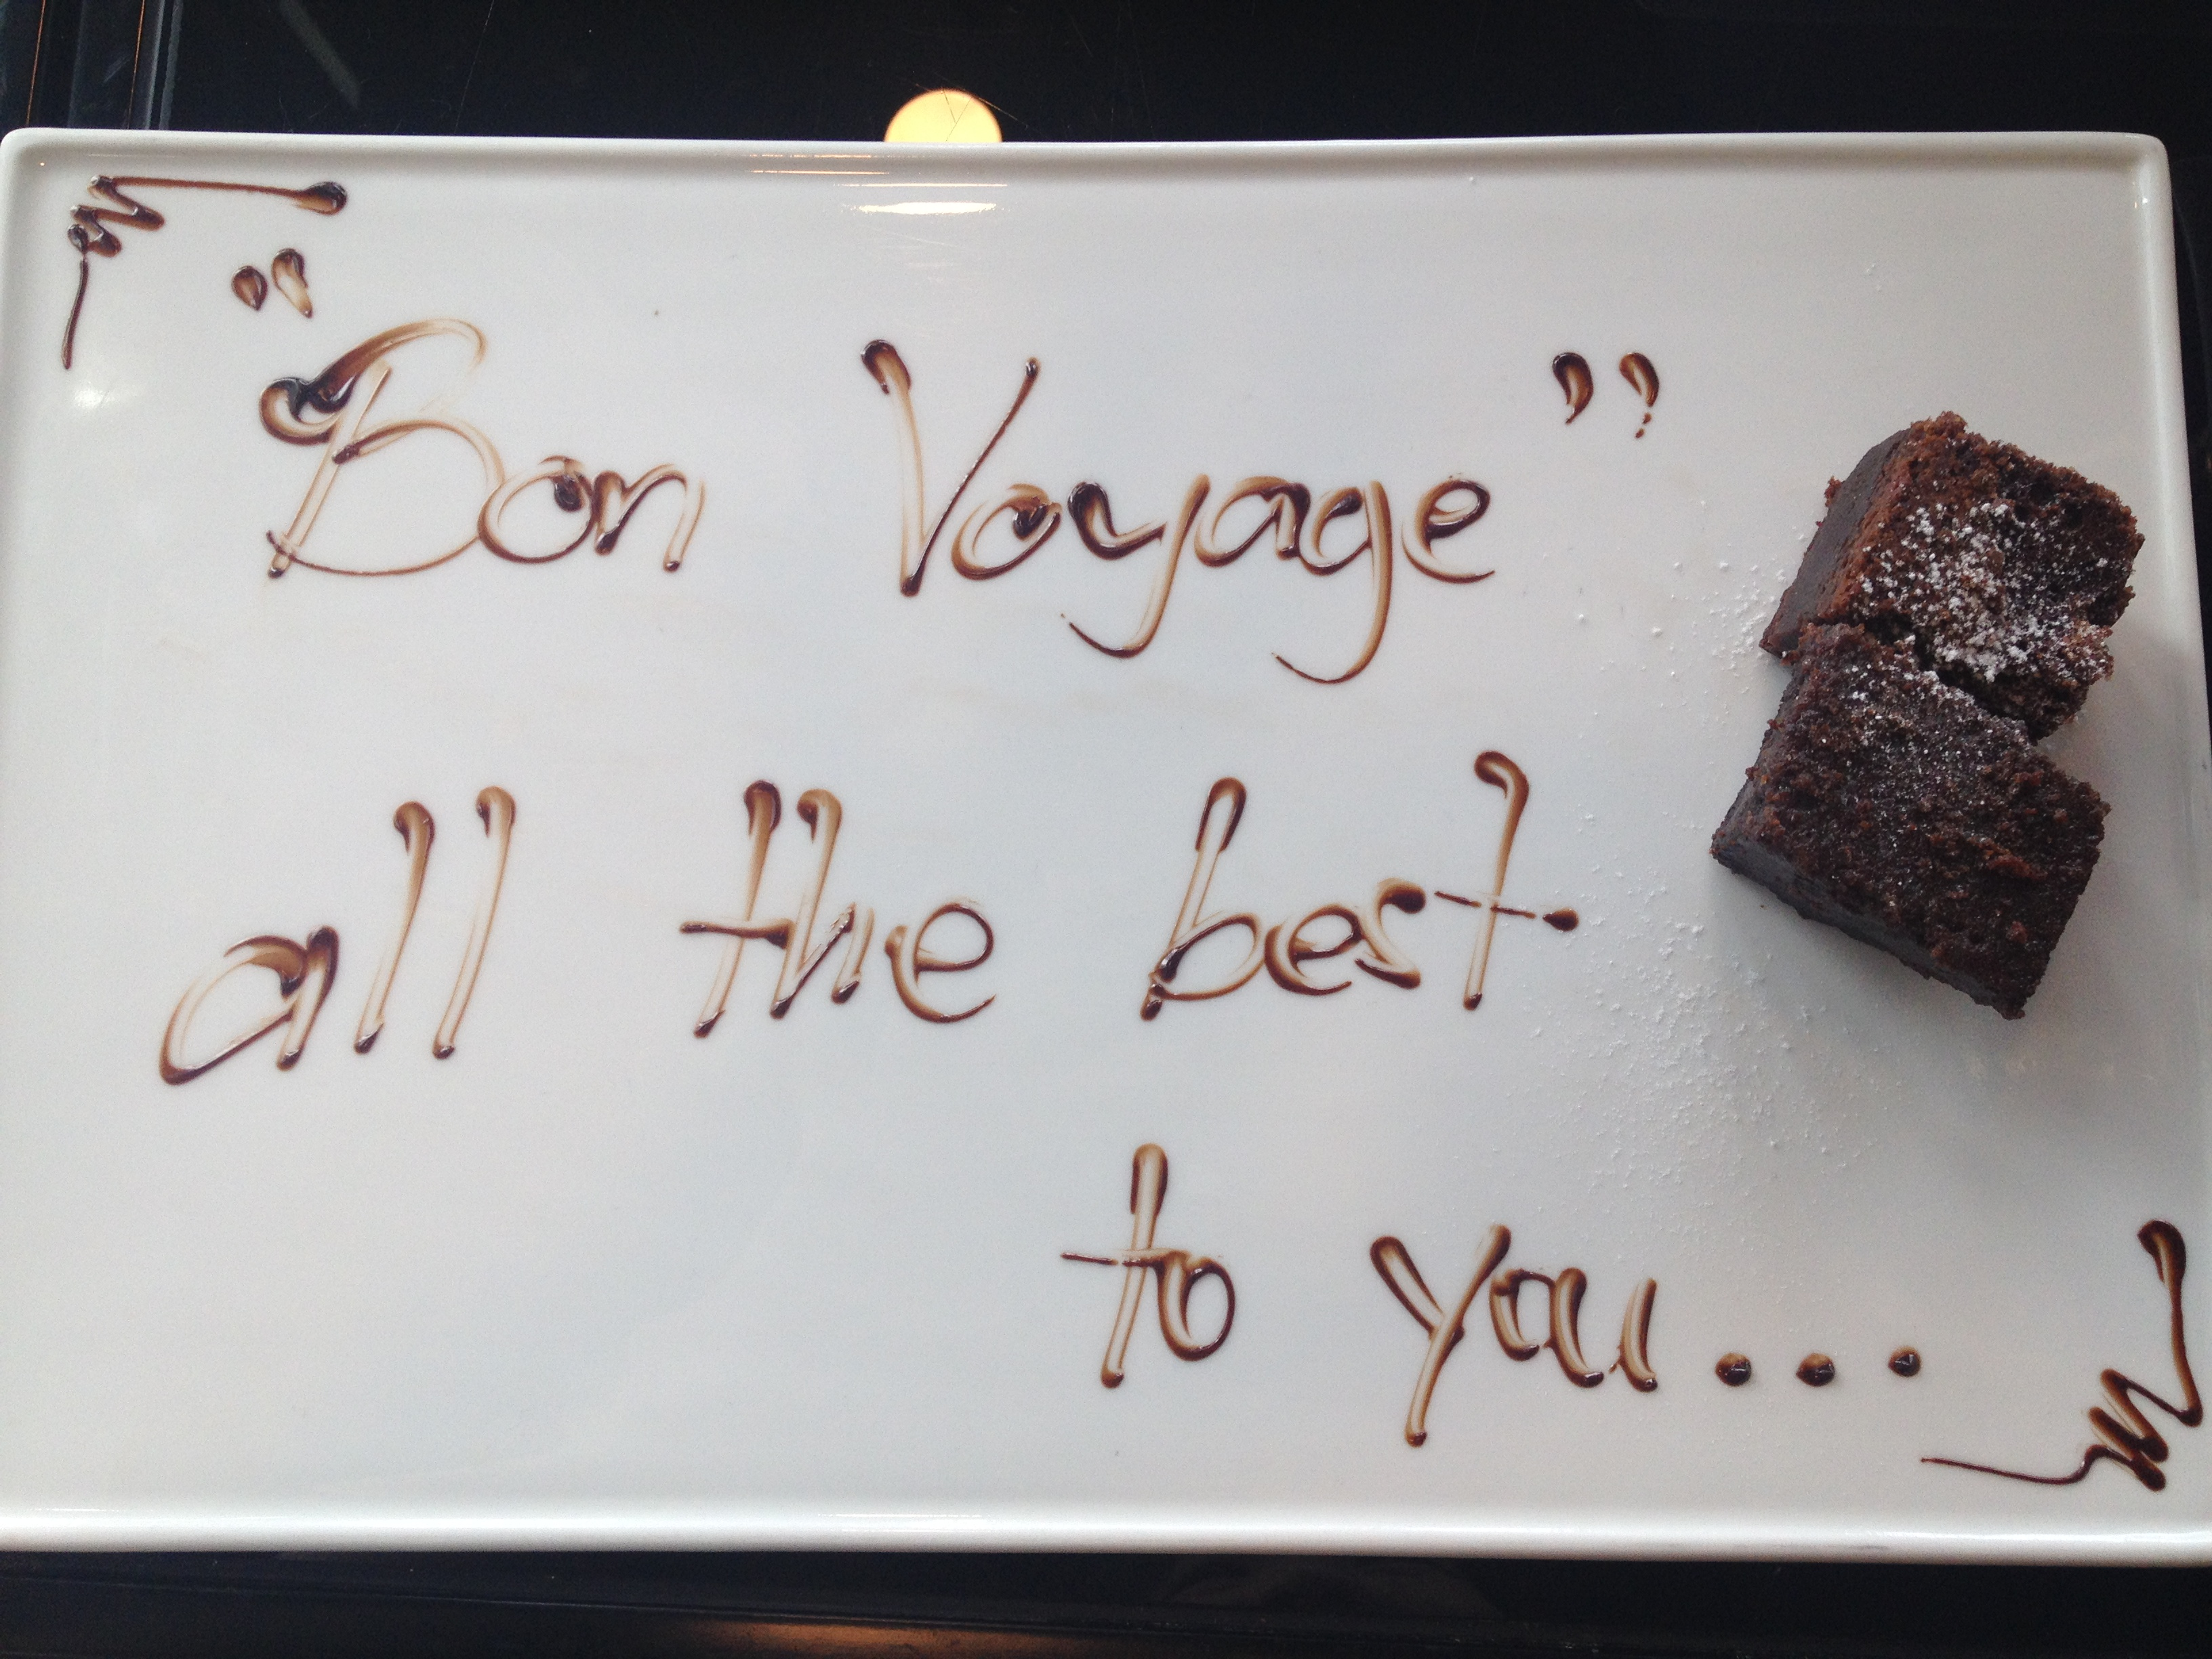 Bon voyage message in chocolate